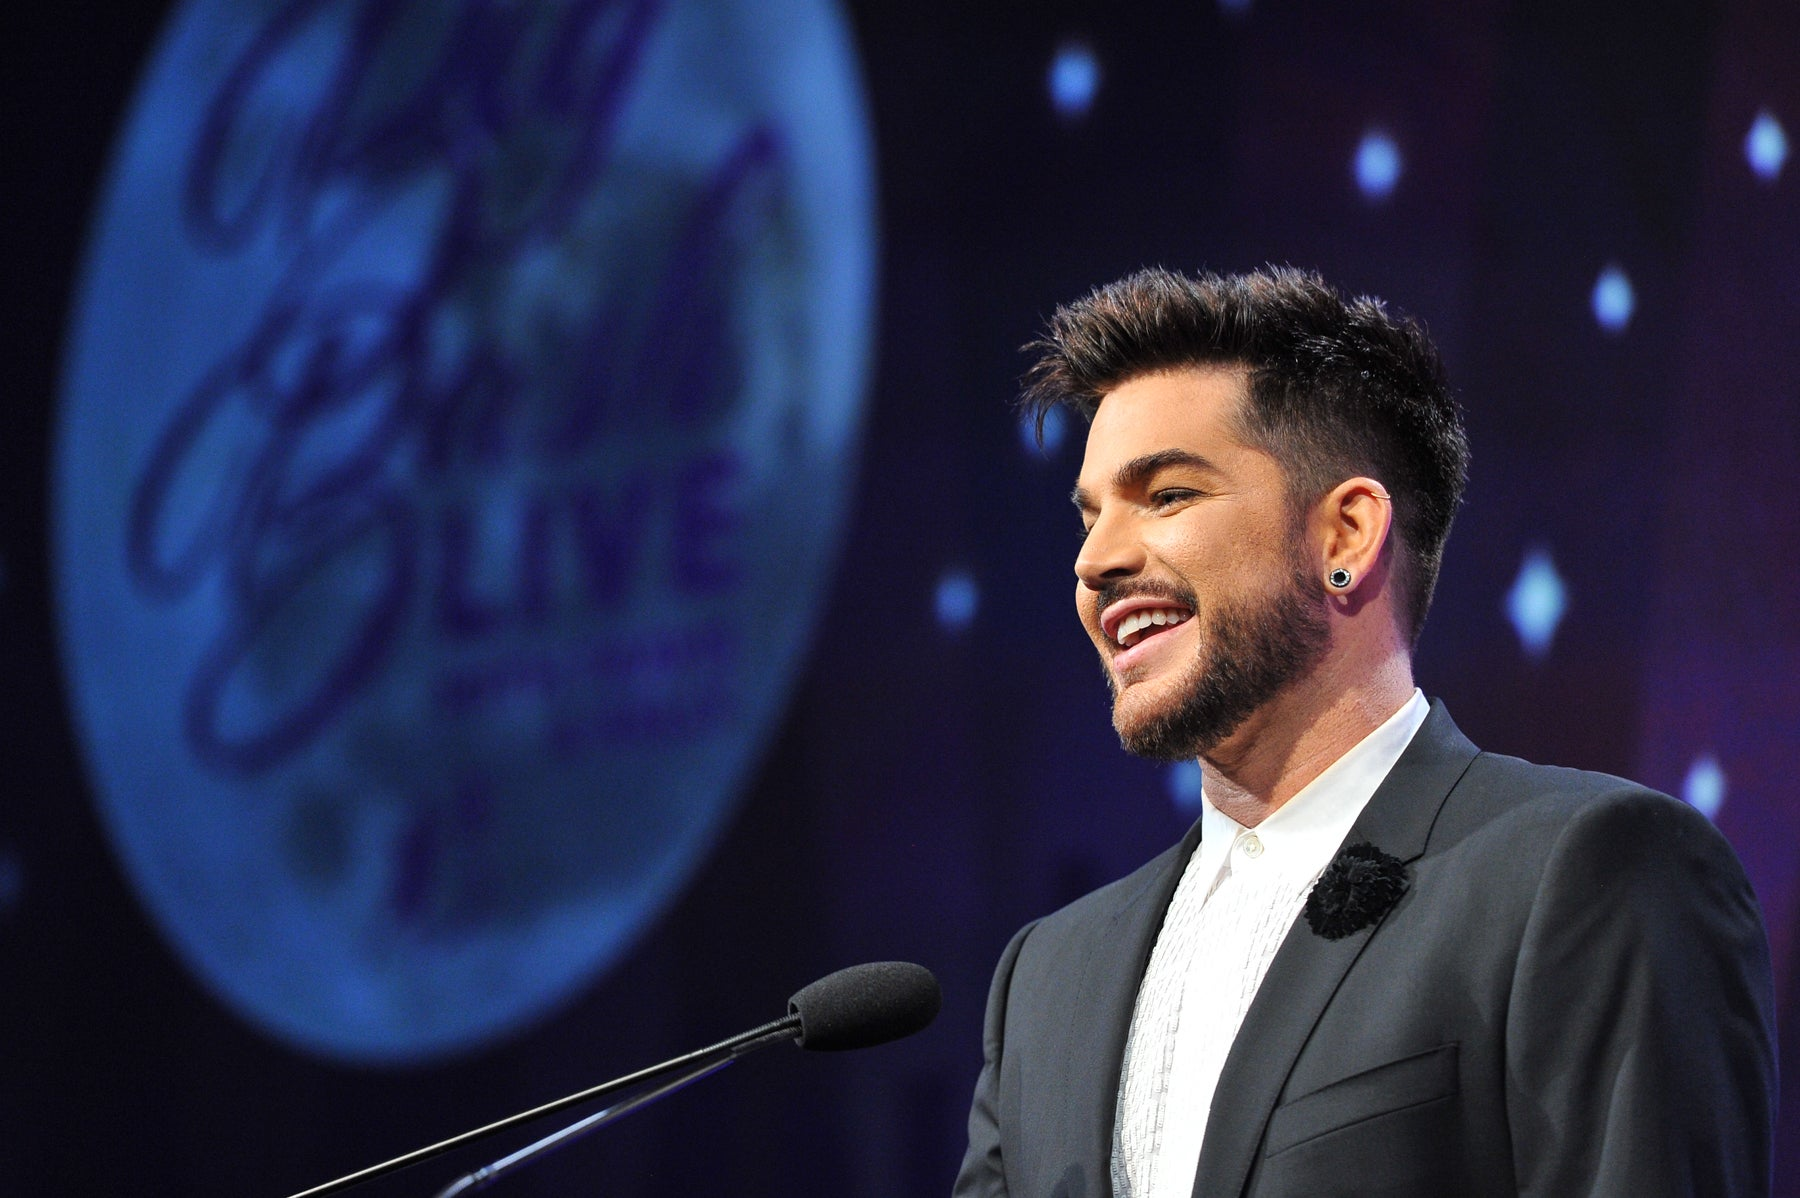 Adam Lambert at Big Brothers Big Sisters Los Angeles event